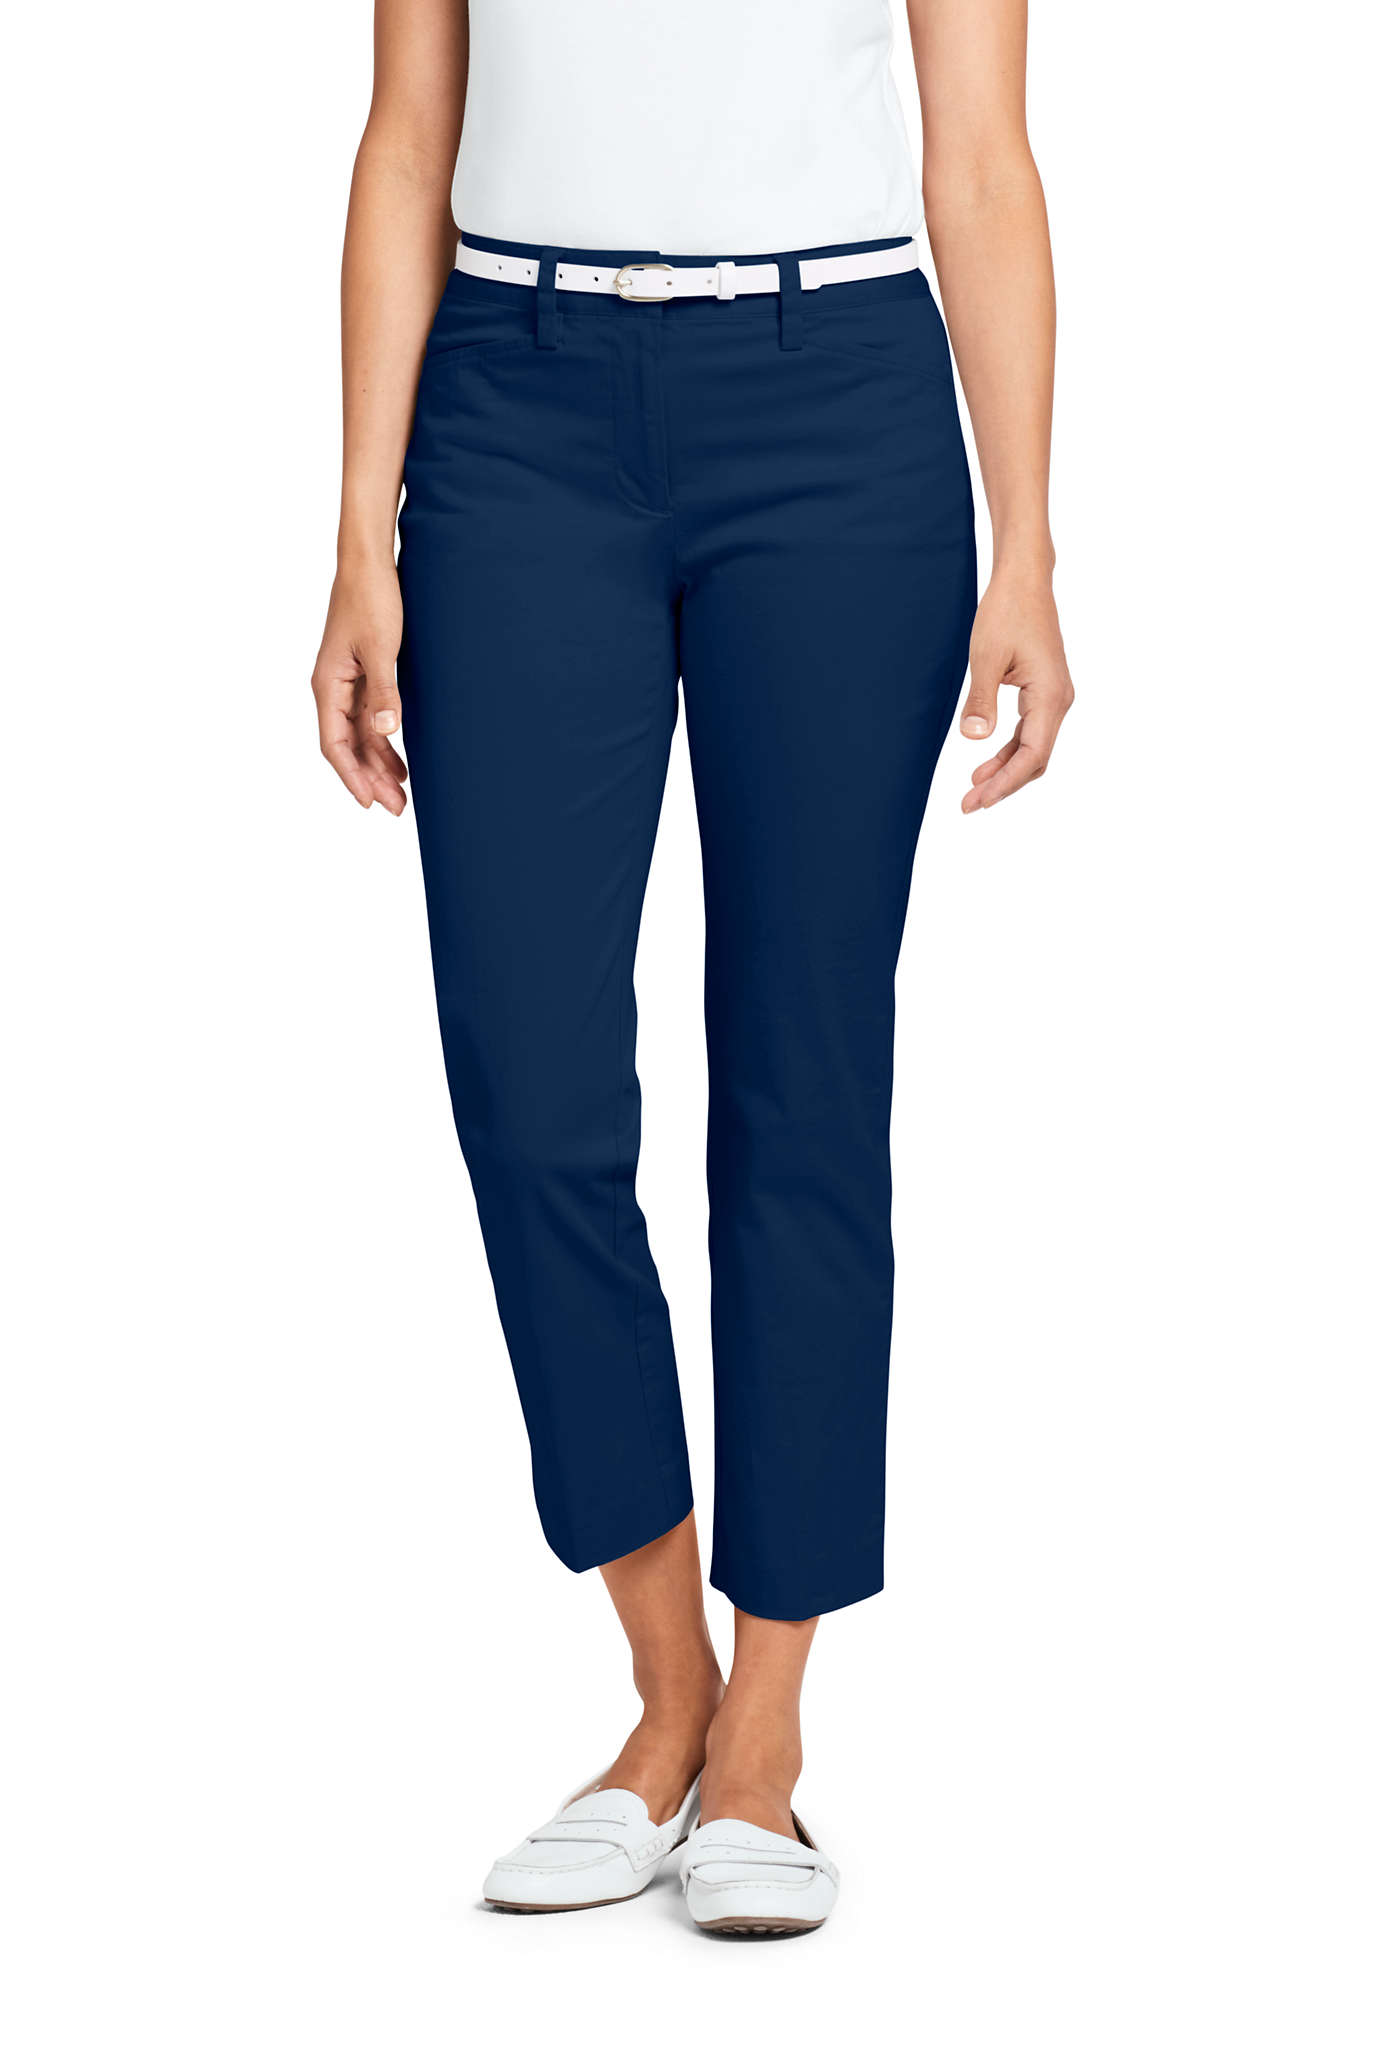 d2387d0443 Women's Capris & Crop Pants | Lands' End